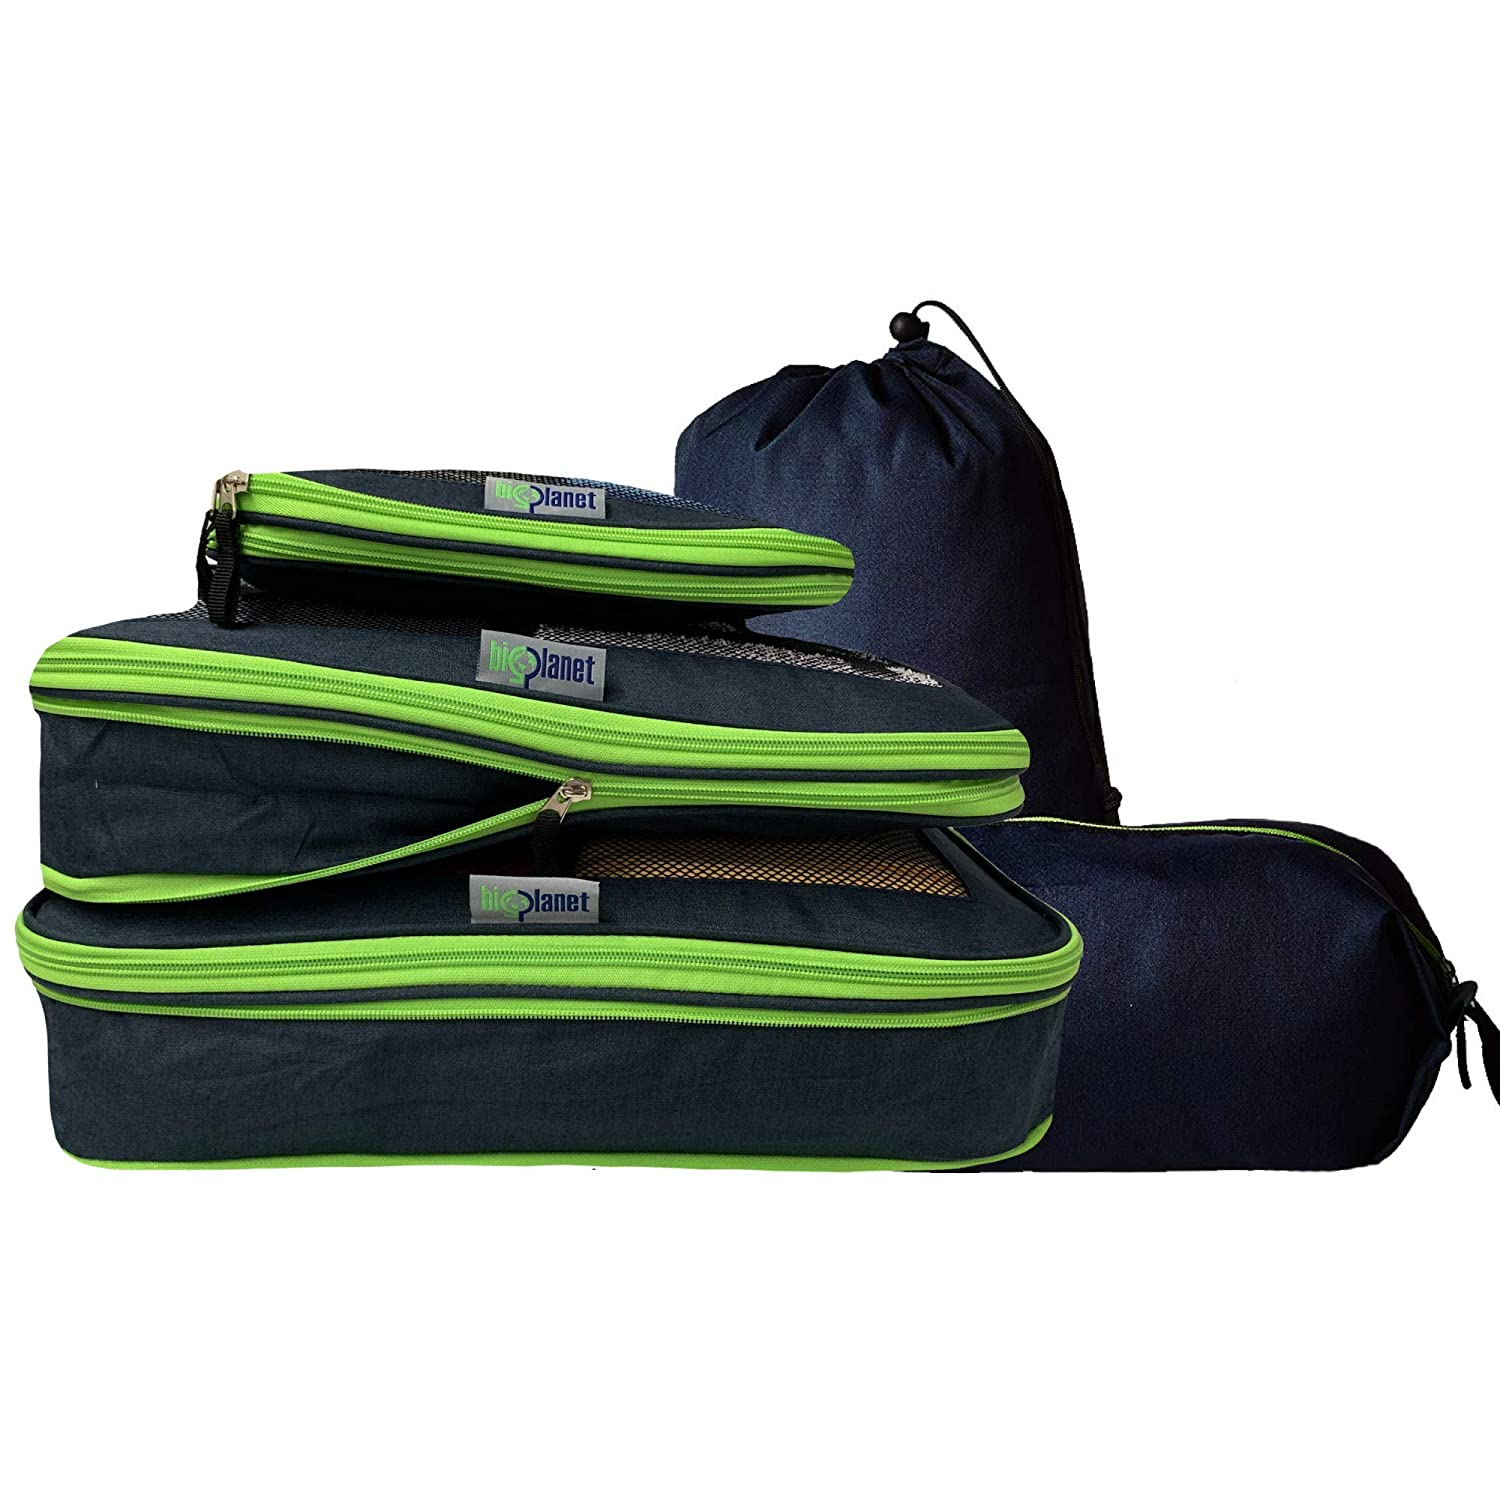 BigPlanet 5 Piece Set - Compression Packing Cubes For Travel, Laundry & Shoe Organizer Bags - Water Resistant Packing Cubes Organize & Compress Luggage Sets, Travel Accessories & Camping Accessories